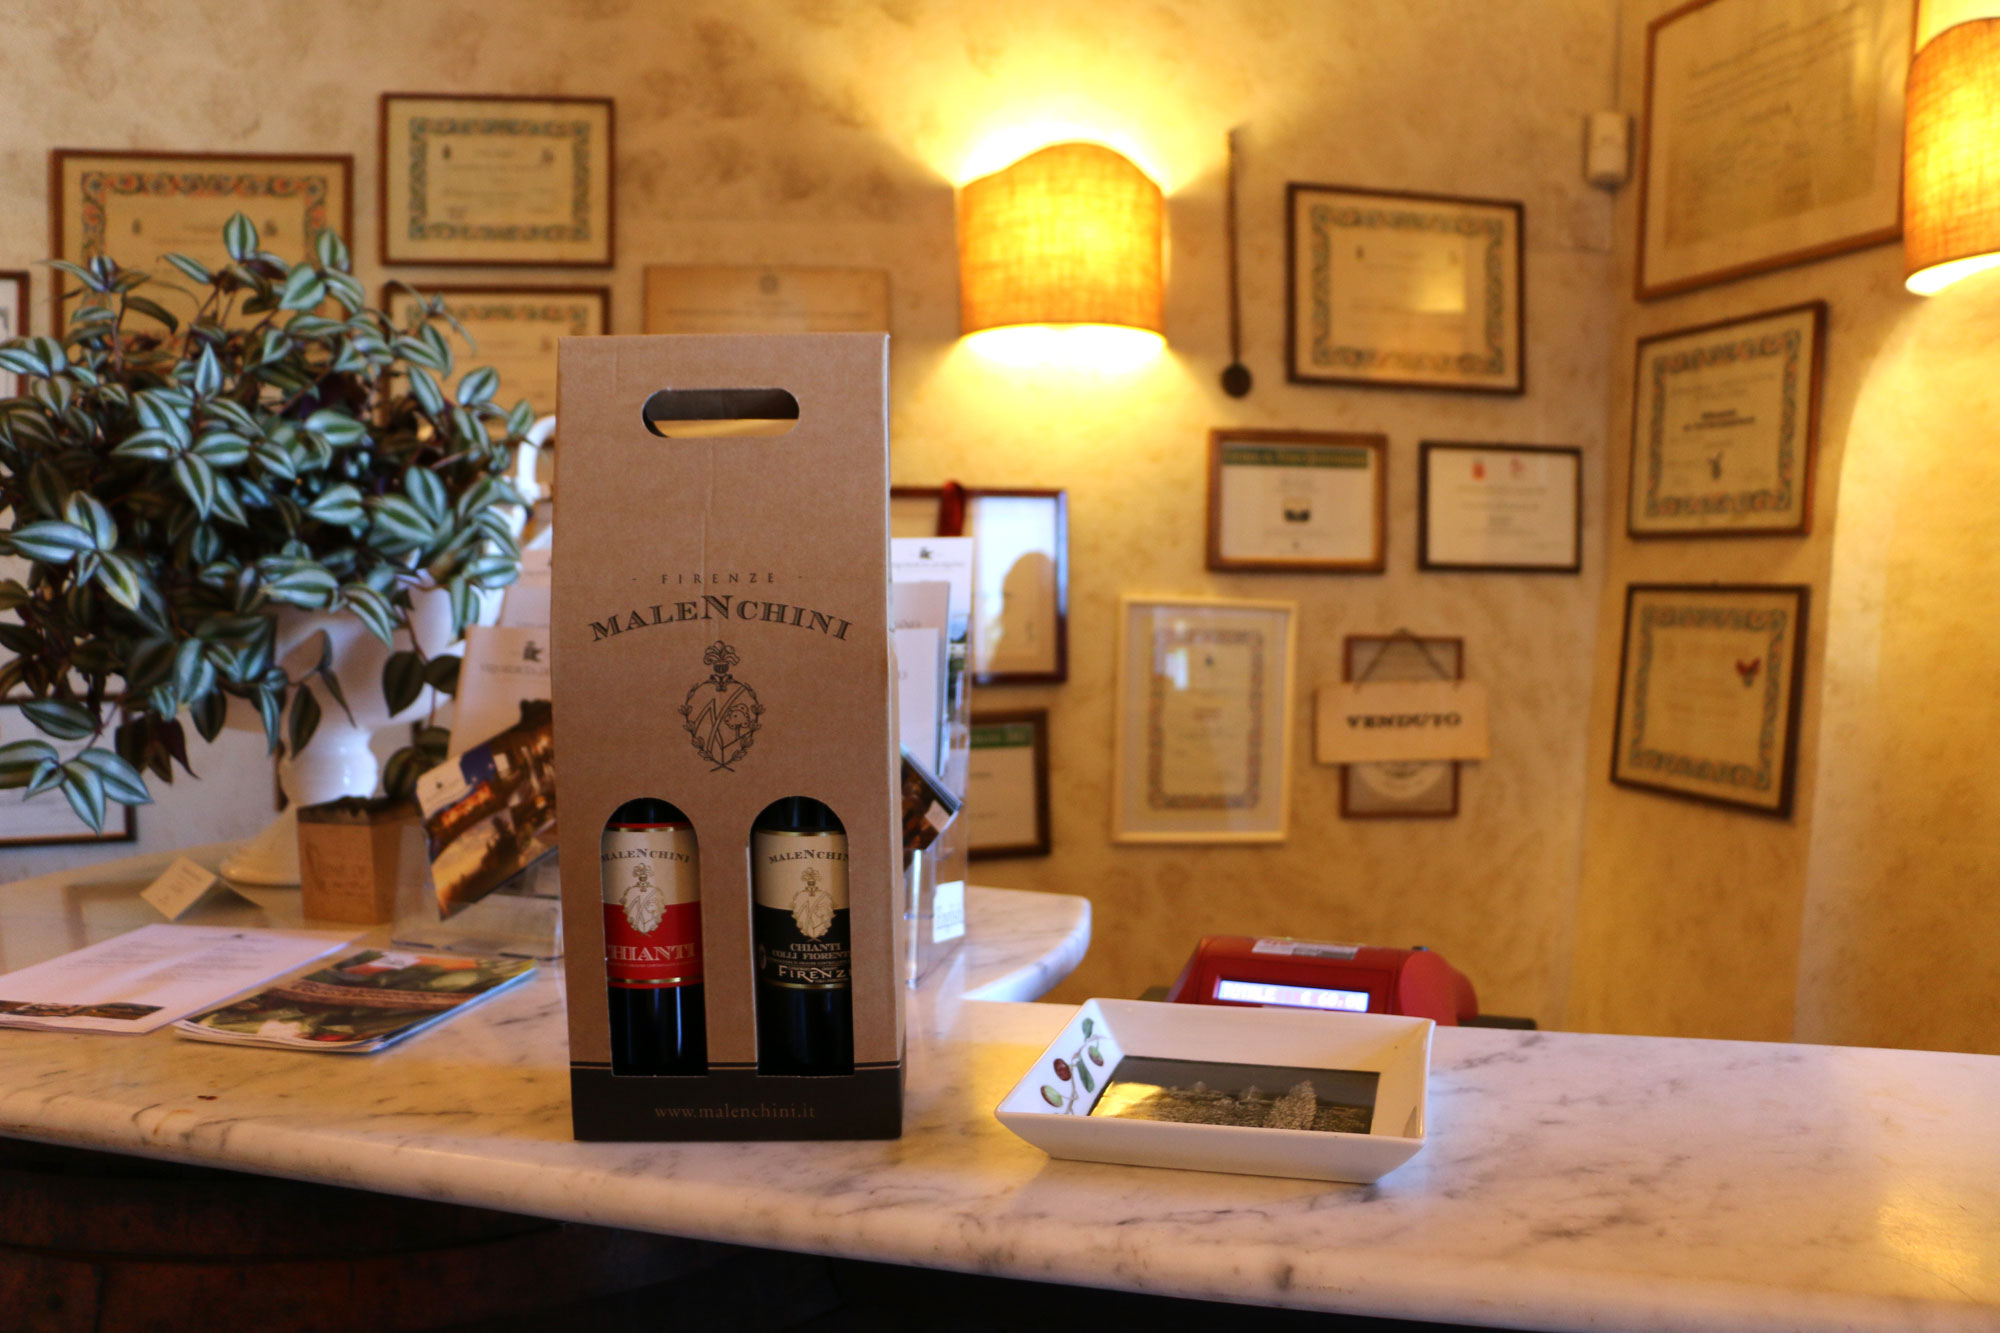 Bagno Design Dubai Clearance Best Way To Get Your Wine Home After A Vacation In Tuscany